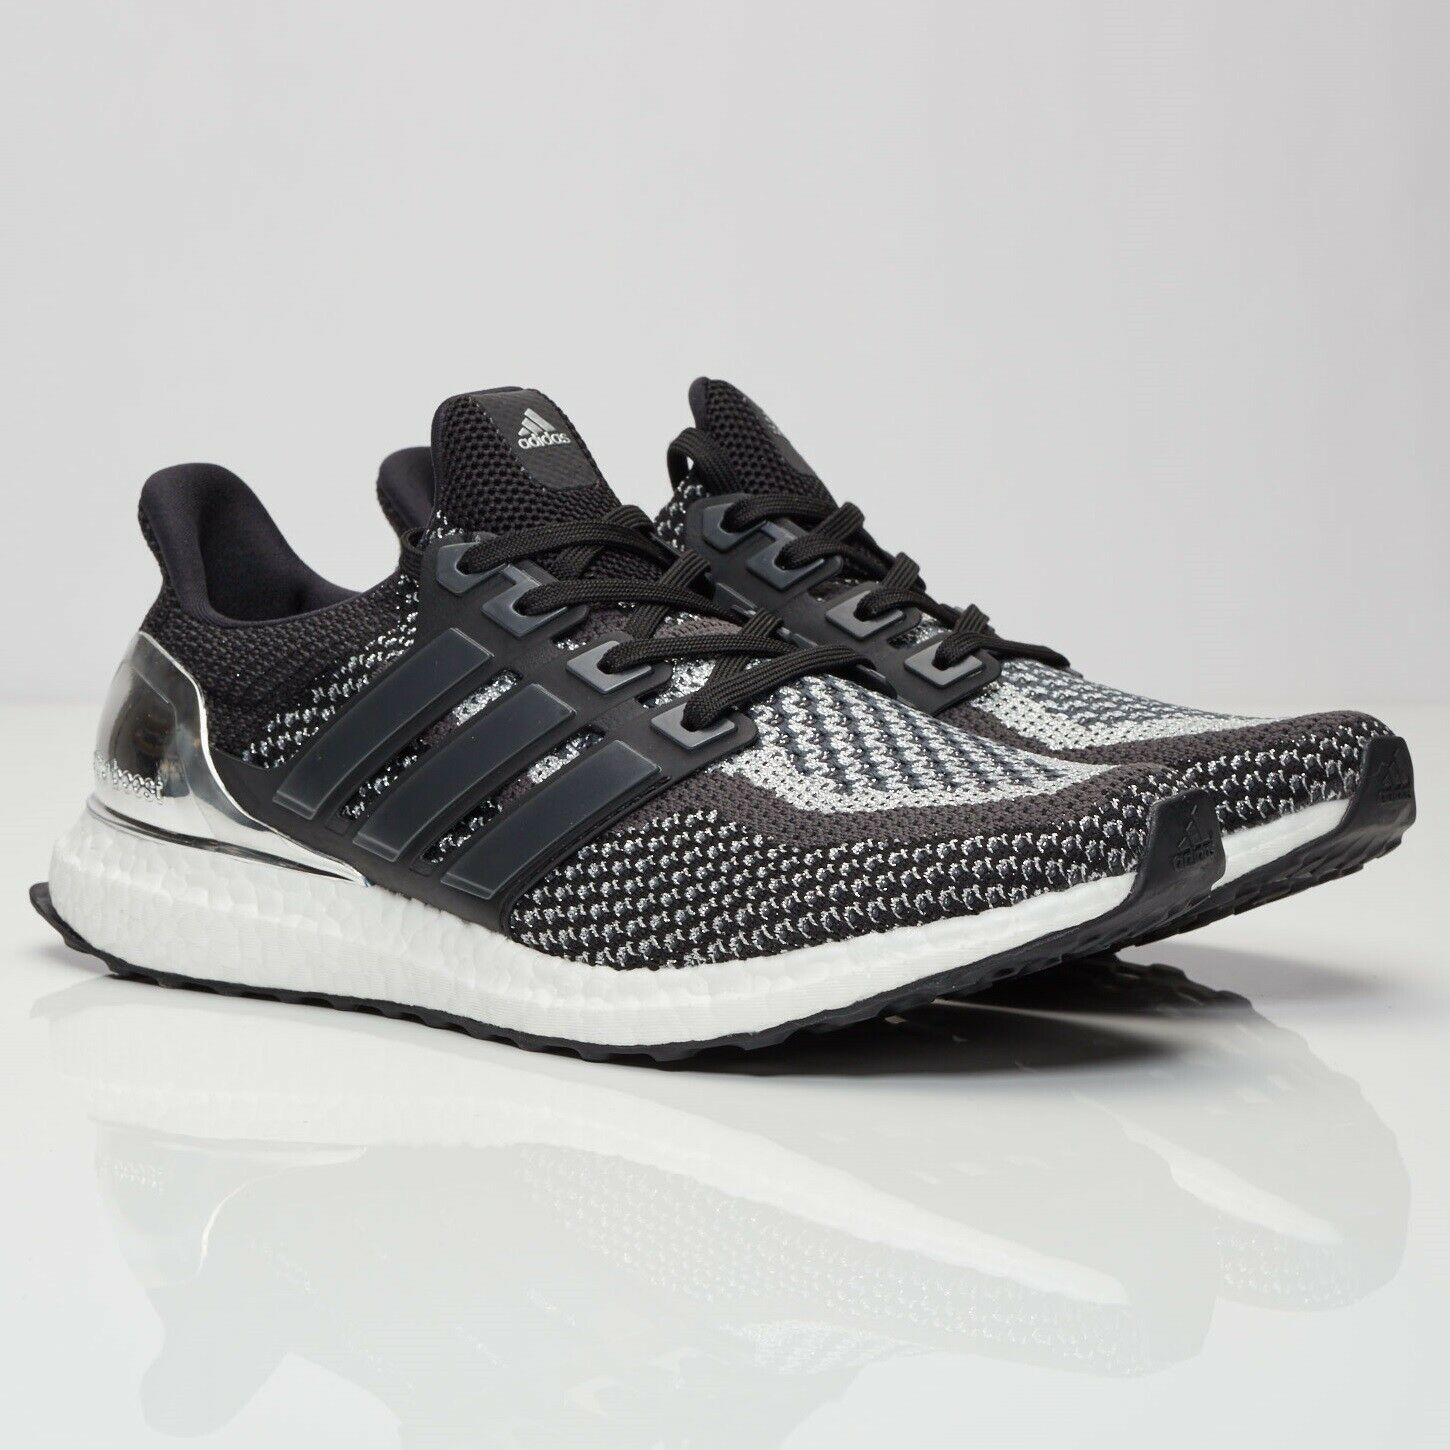 Adidas Ultra Boost 2.0 LTD adultes médaille argent BB4077 Limited ultraboost 3-7